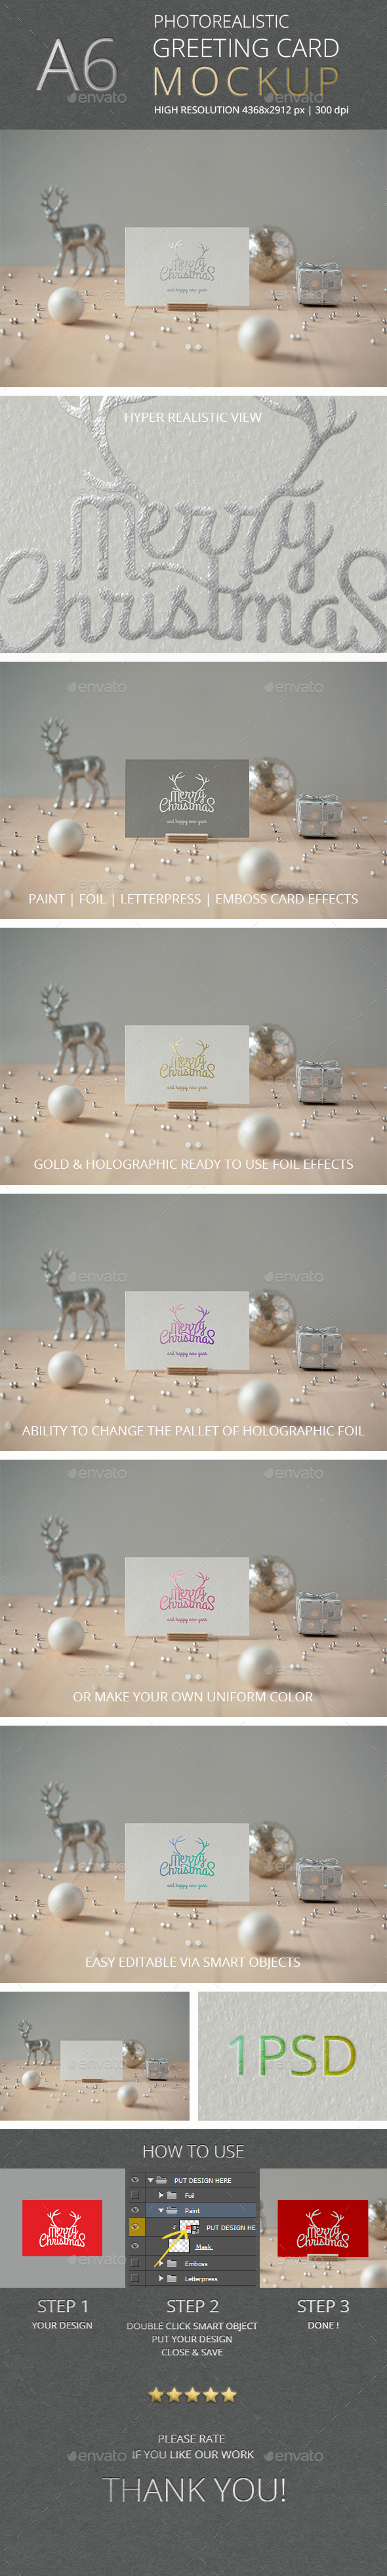 Photorealistic Invitation & Greeting Card Mockup Vol 4.0 / A6 Edition - Miscellaneous Print